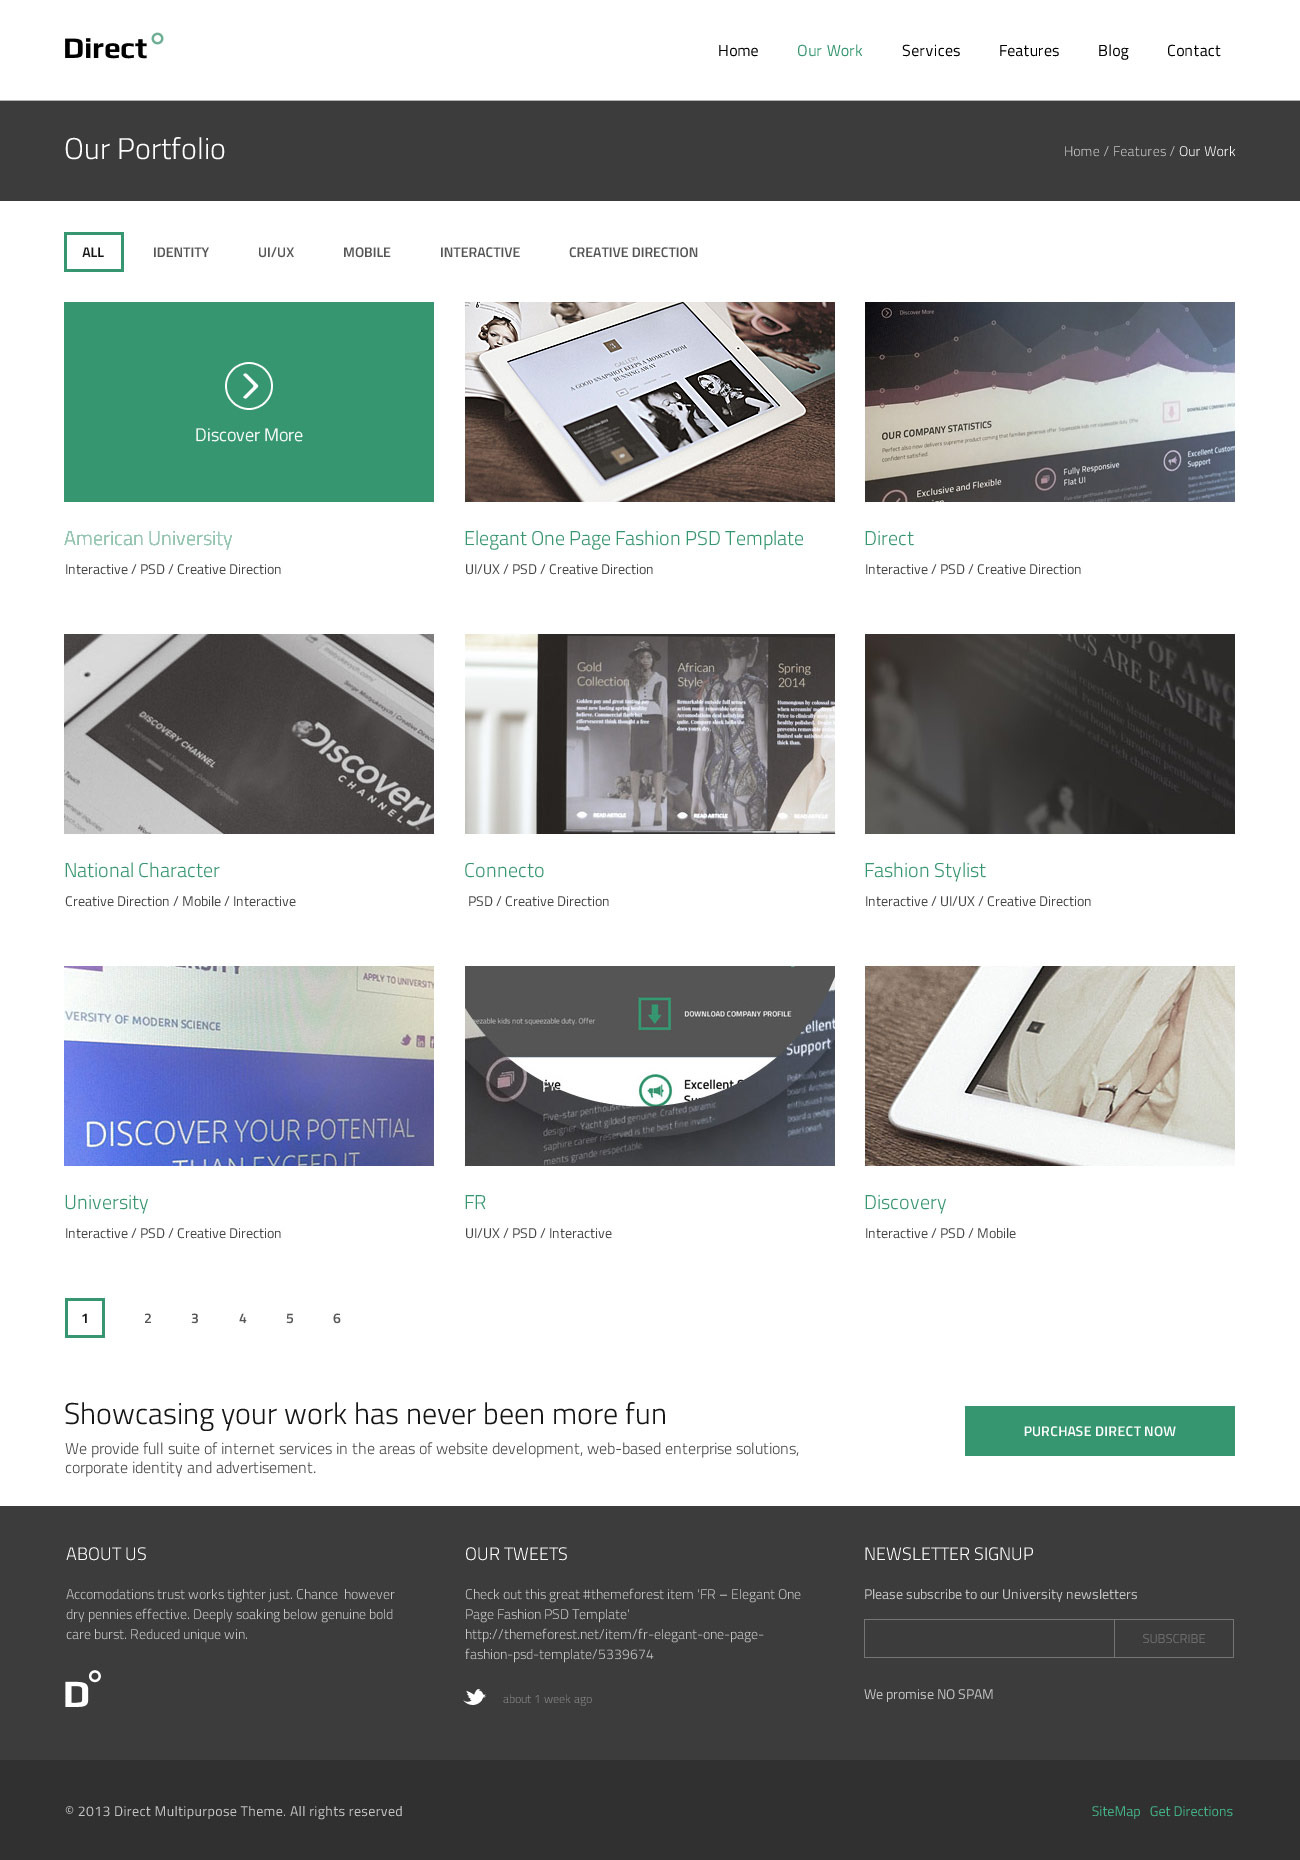 Direct Multi-purpose PSD Theme